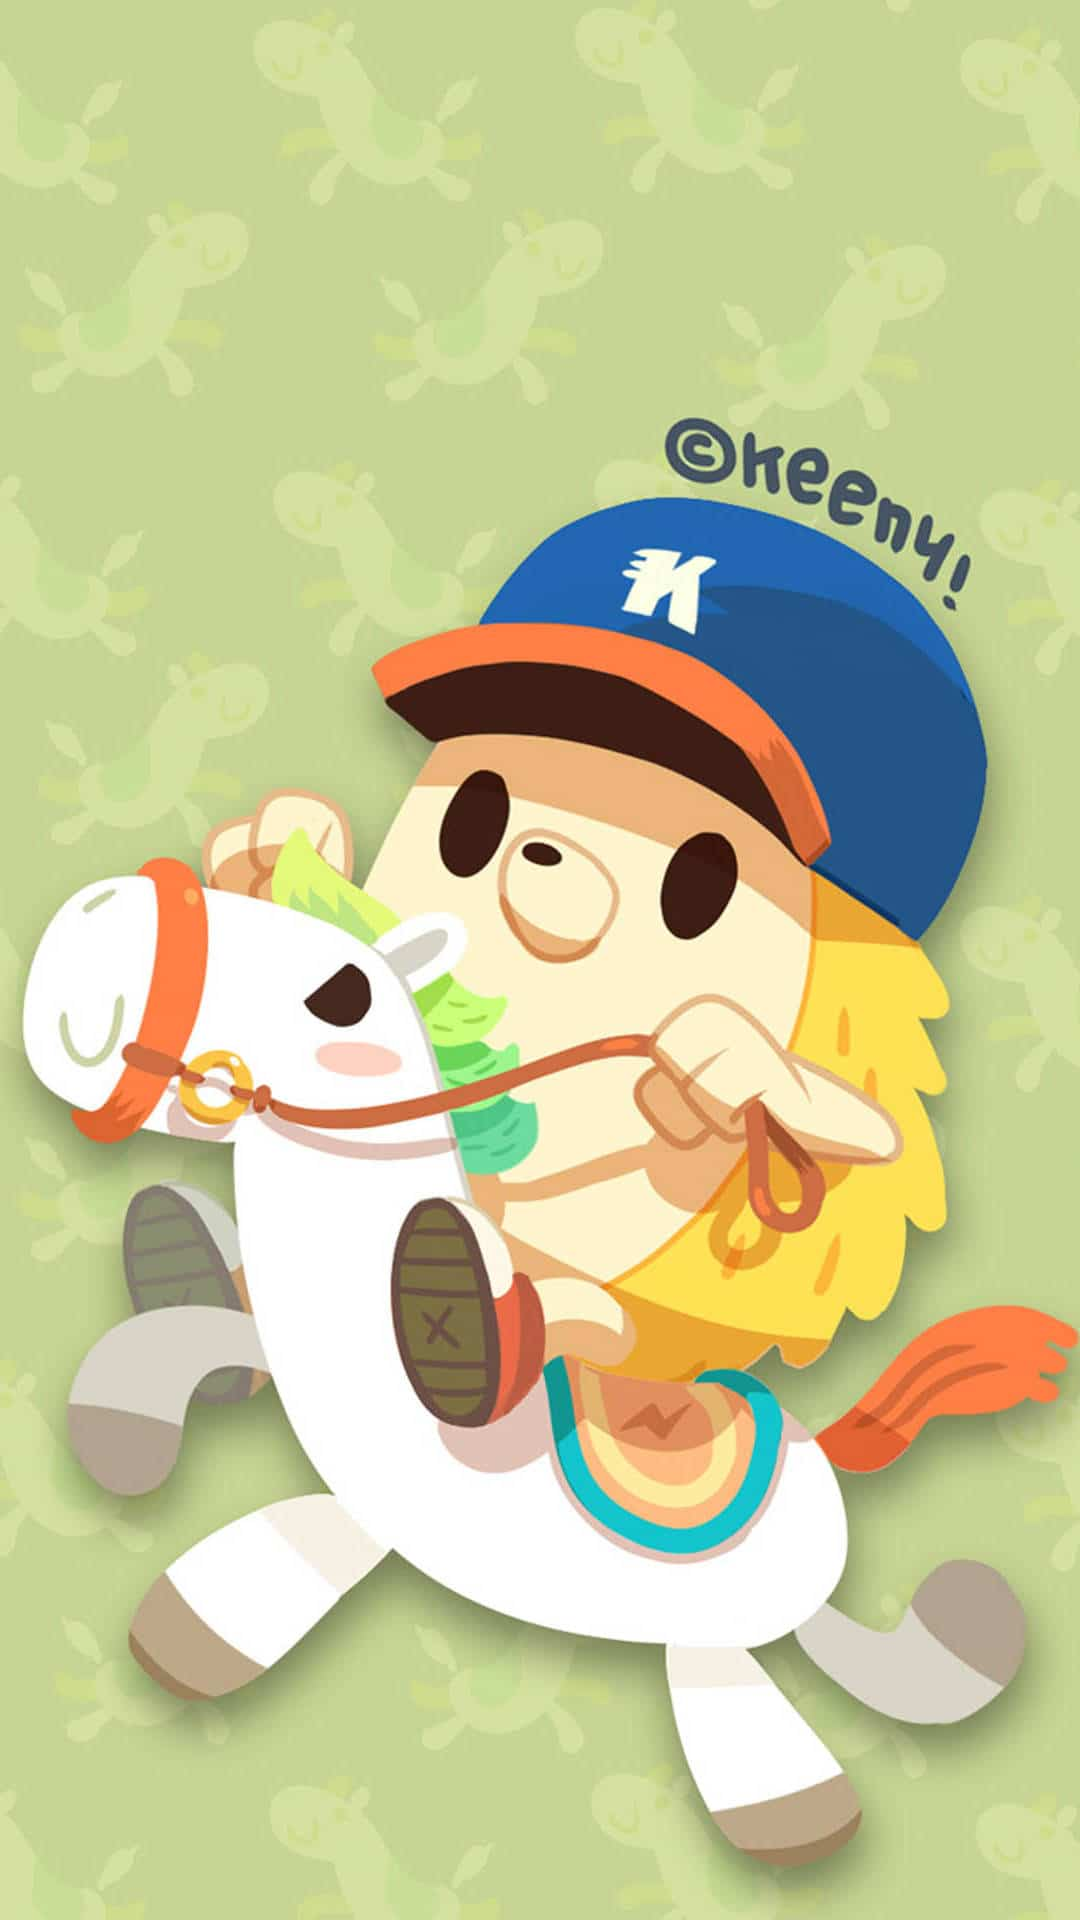 cute iphone wallpapers cool 6s apple backgrounds keeny lives characters cartoon wallpaperaccess applelives